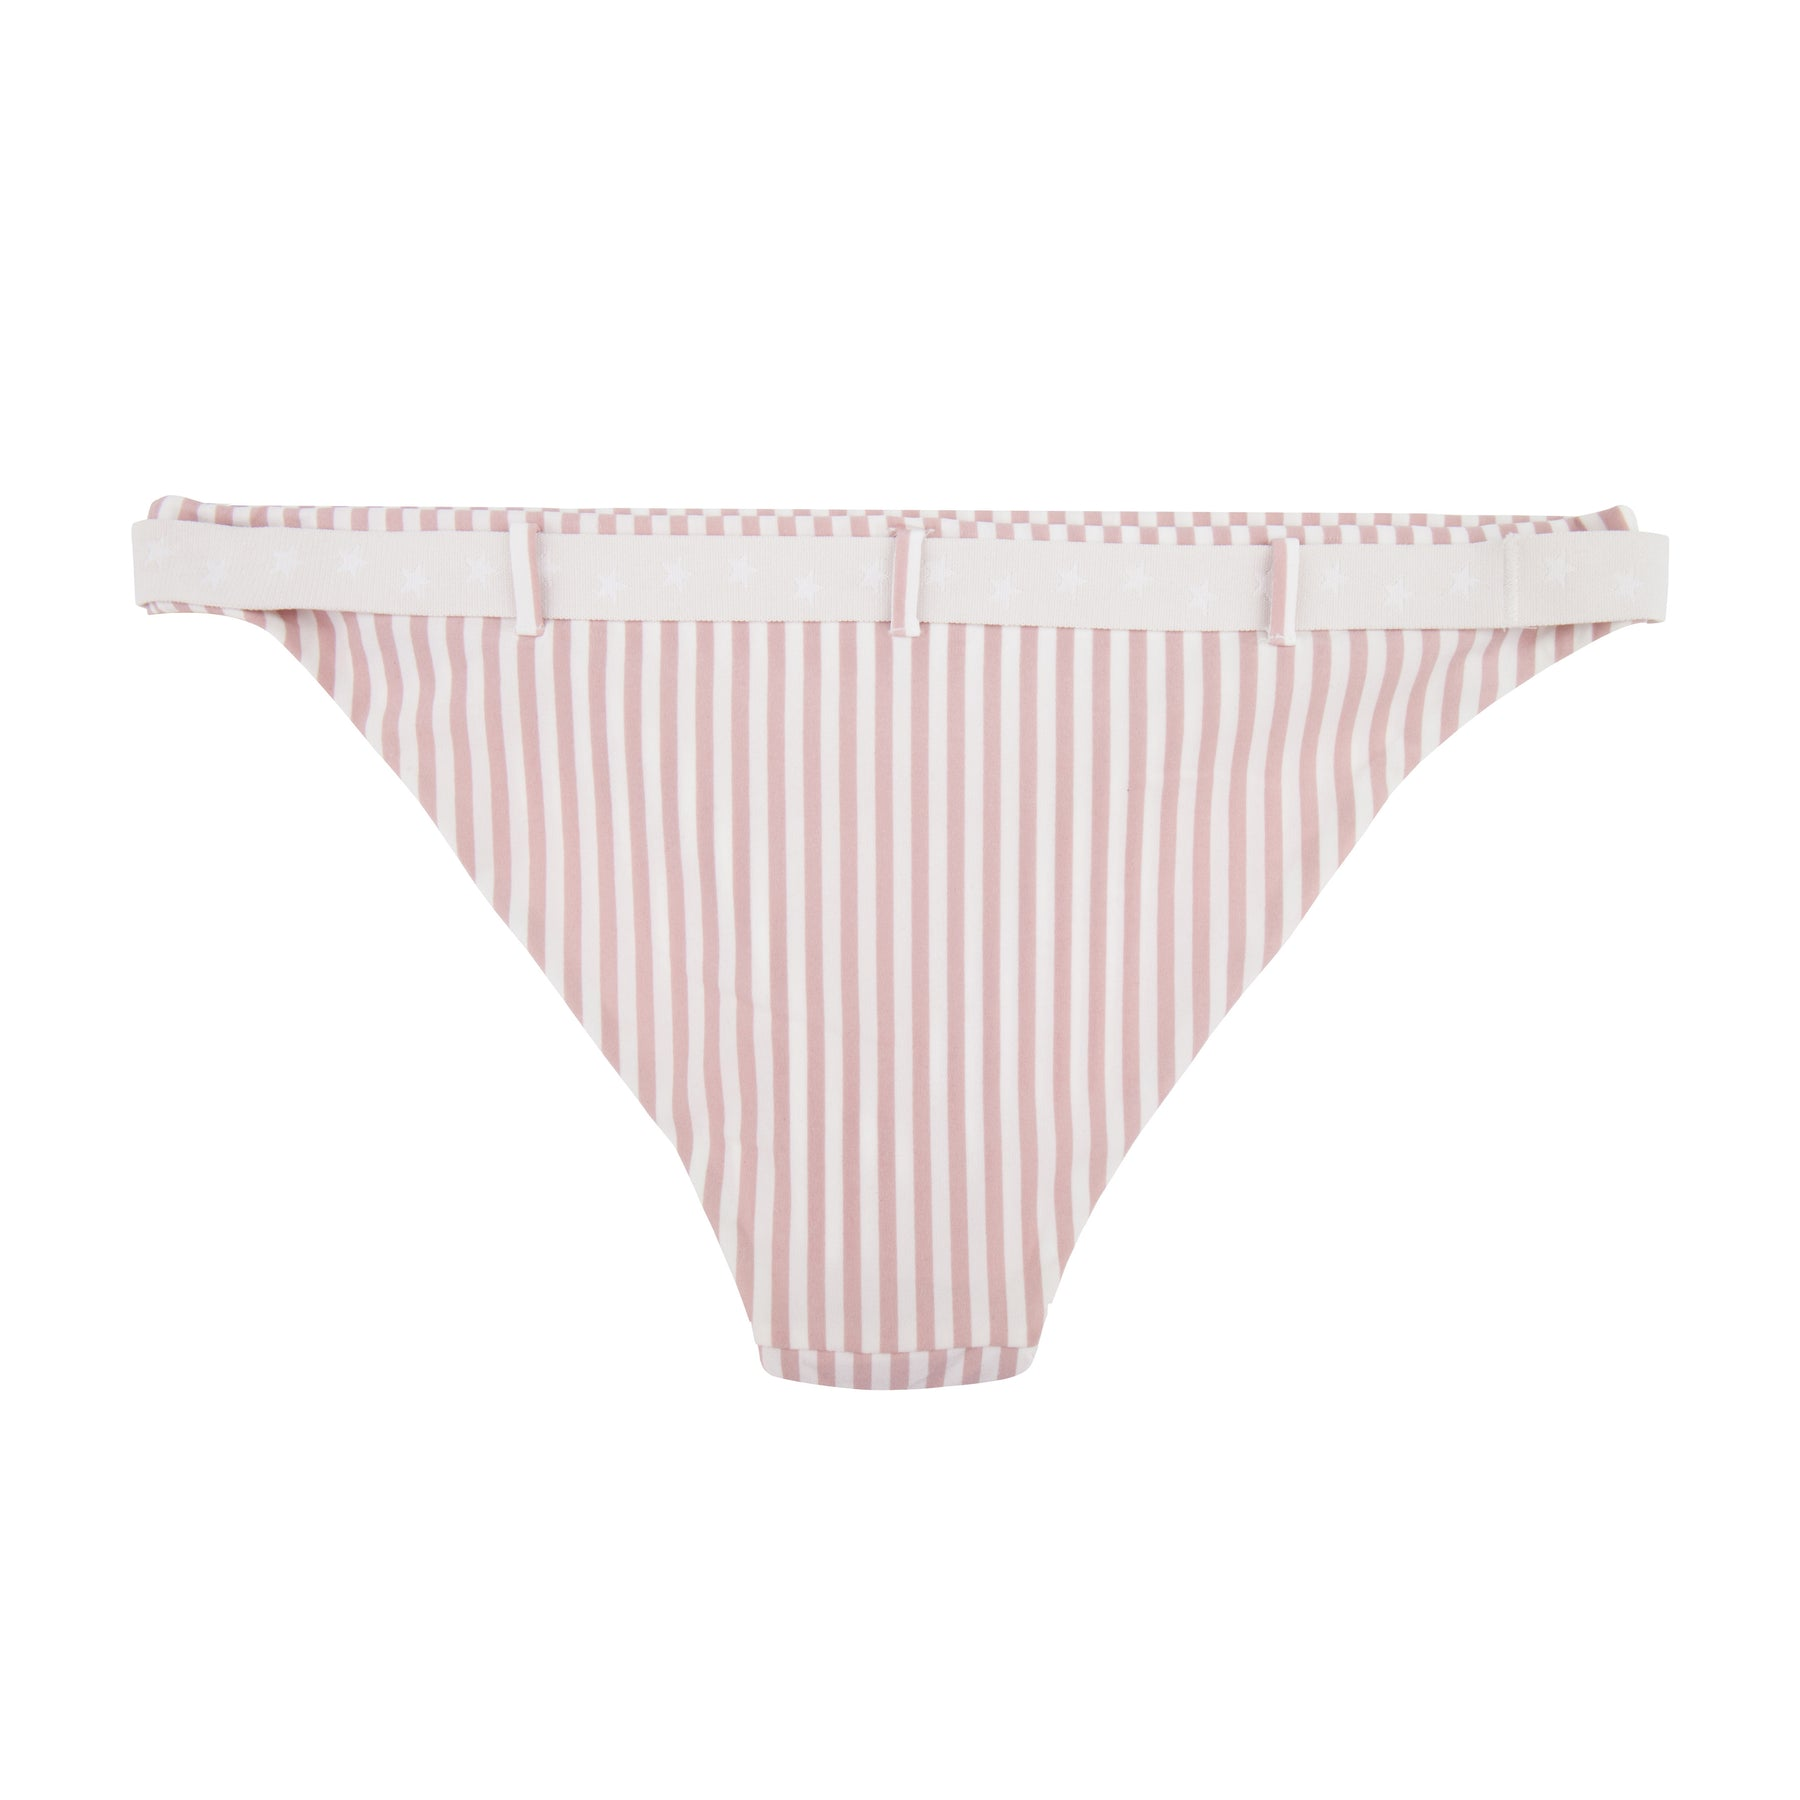 Pippa Bikini Briefs | LOVE Stories